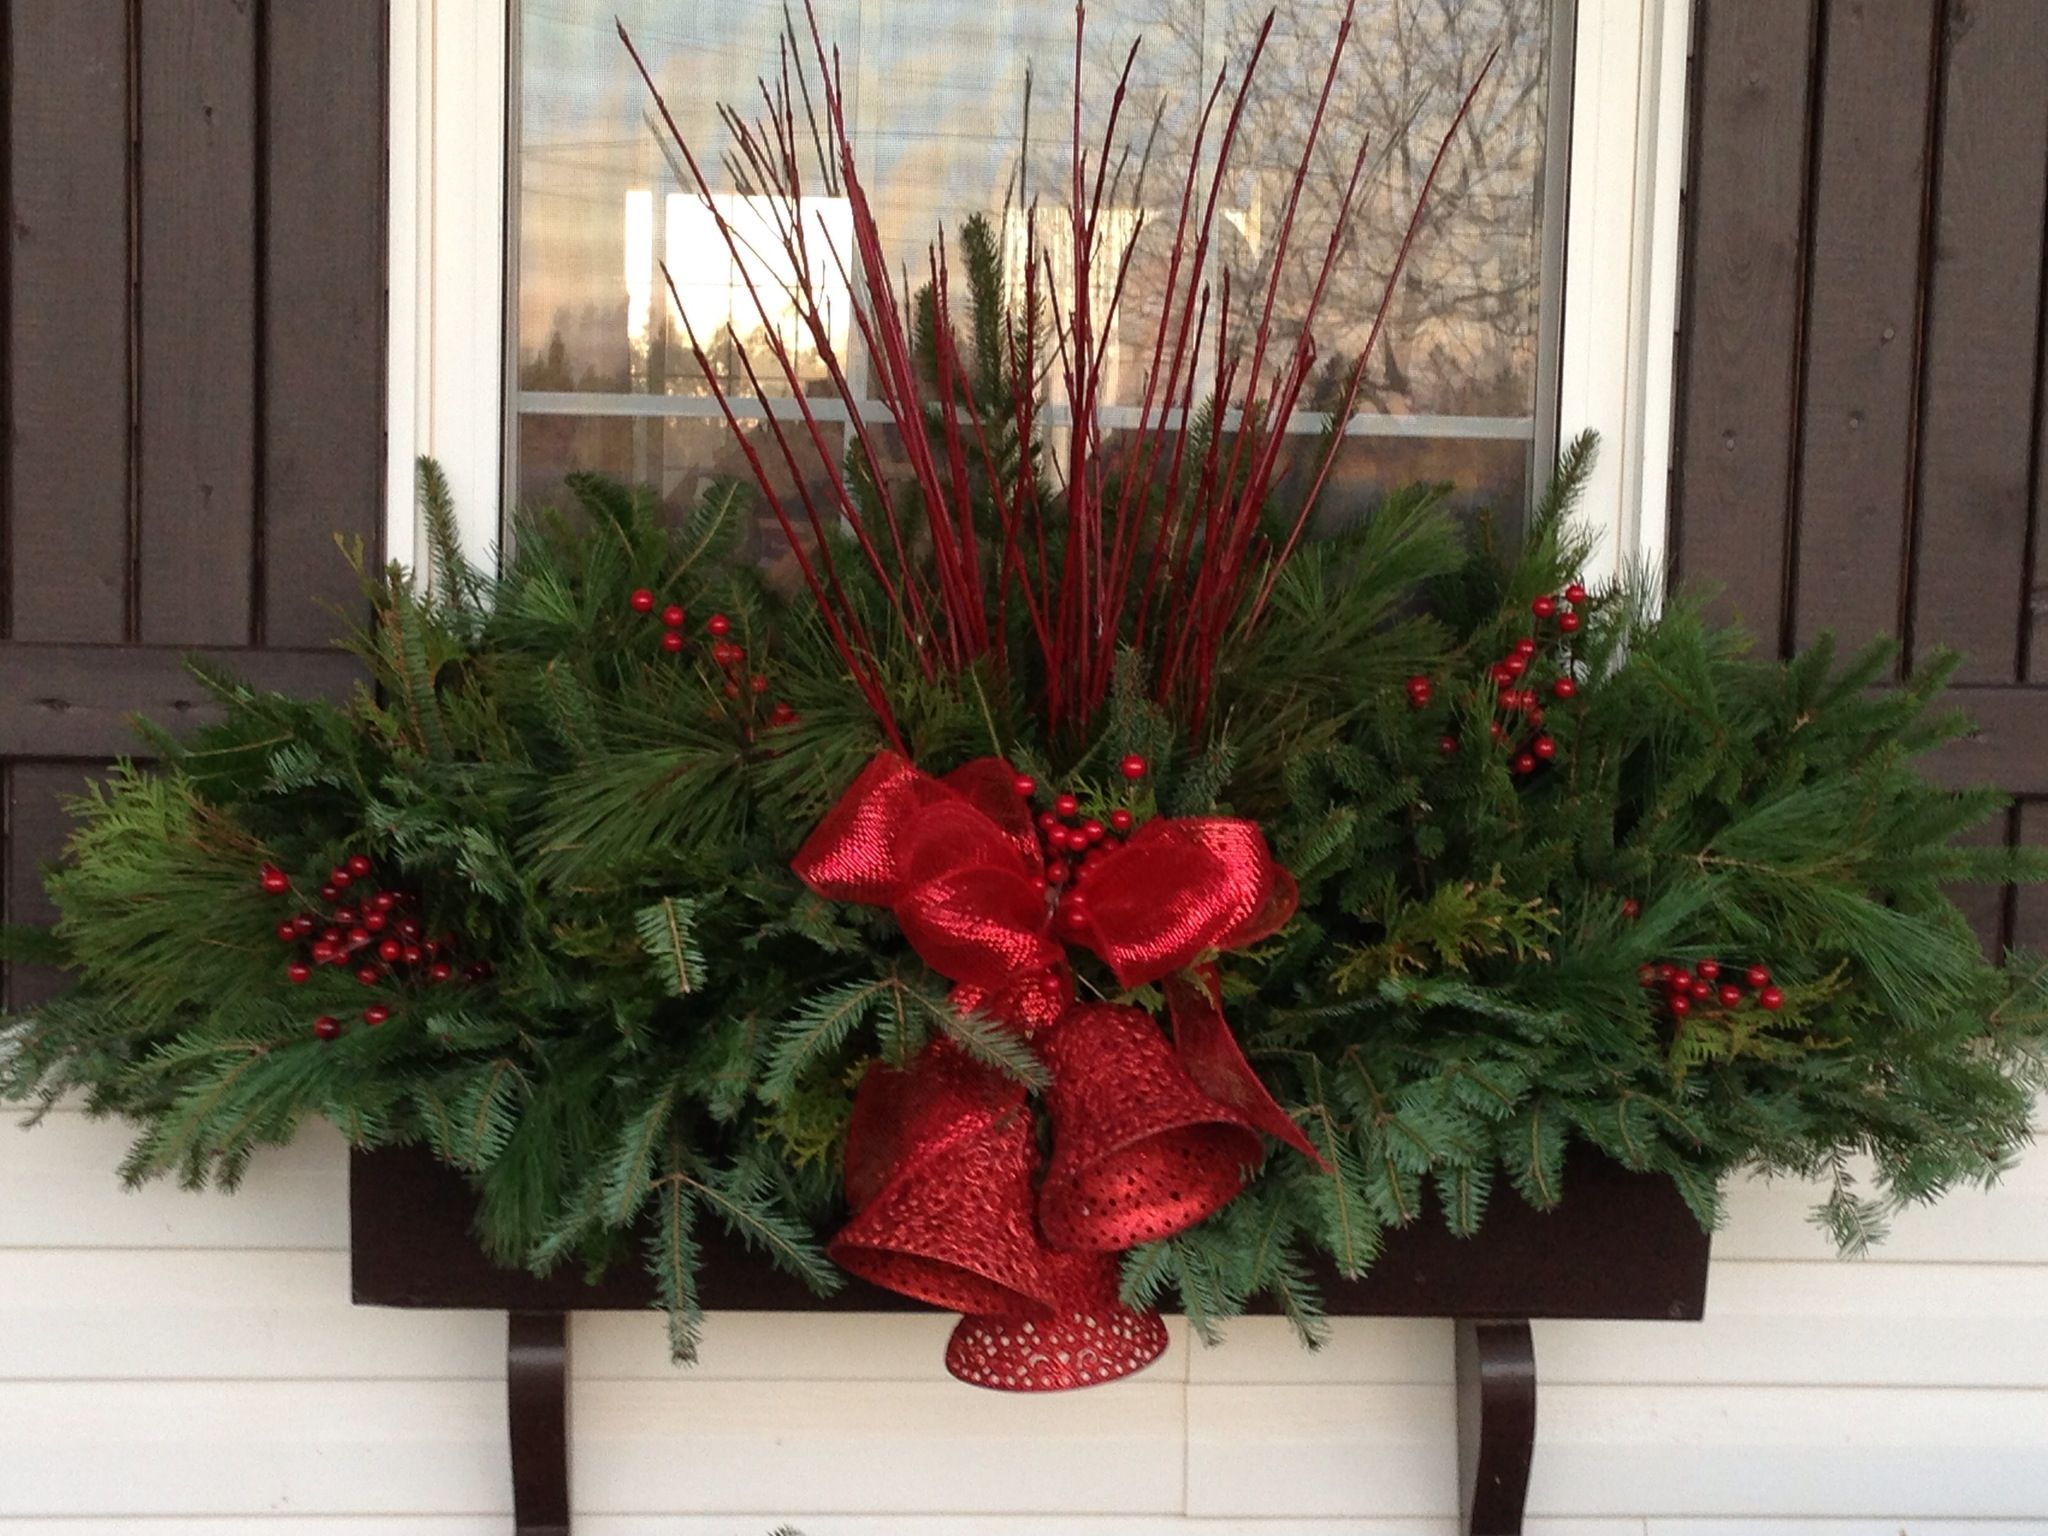 20 Easy Holiday Window Box Ideas | Christmas | Pinterest | Christmas ...